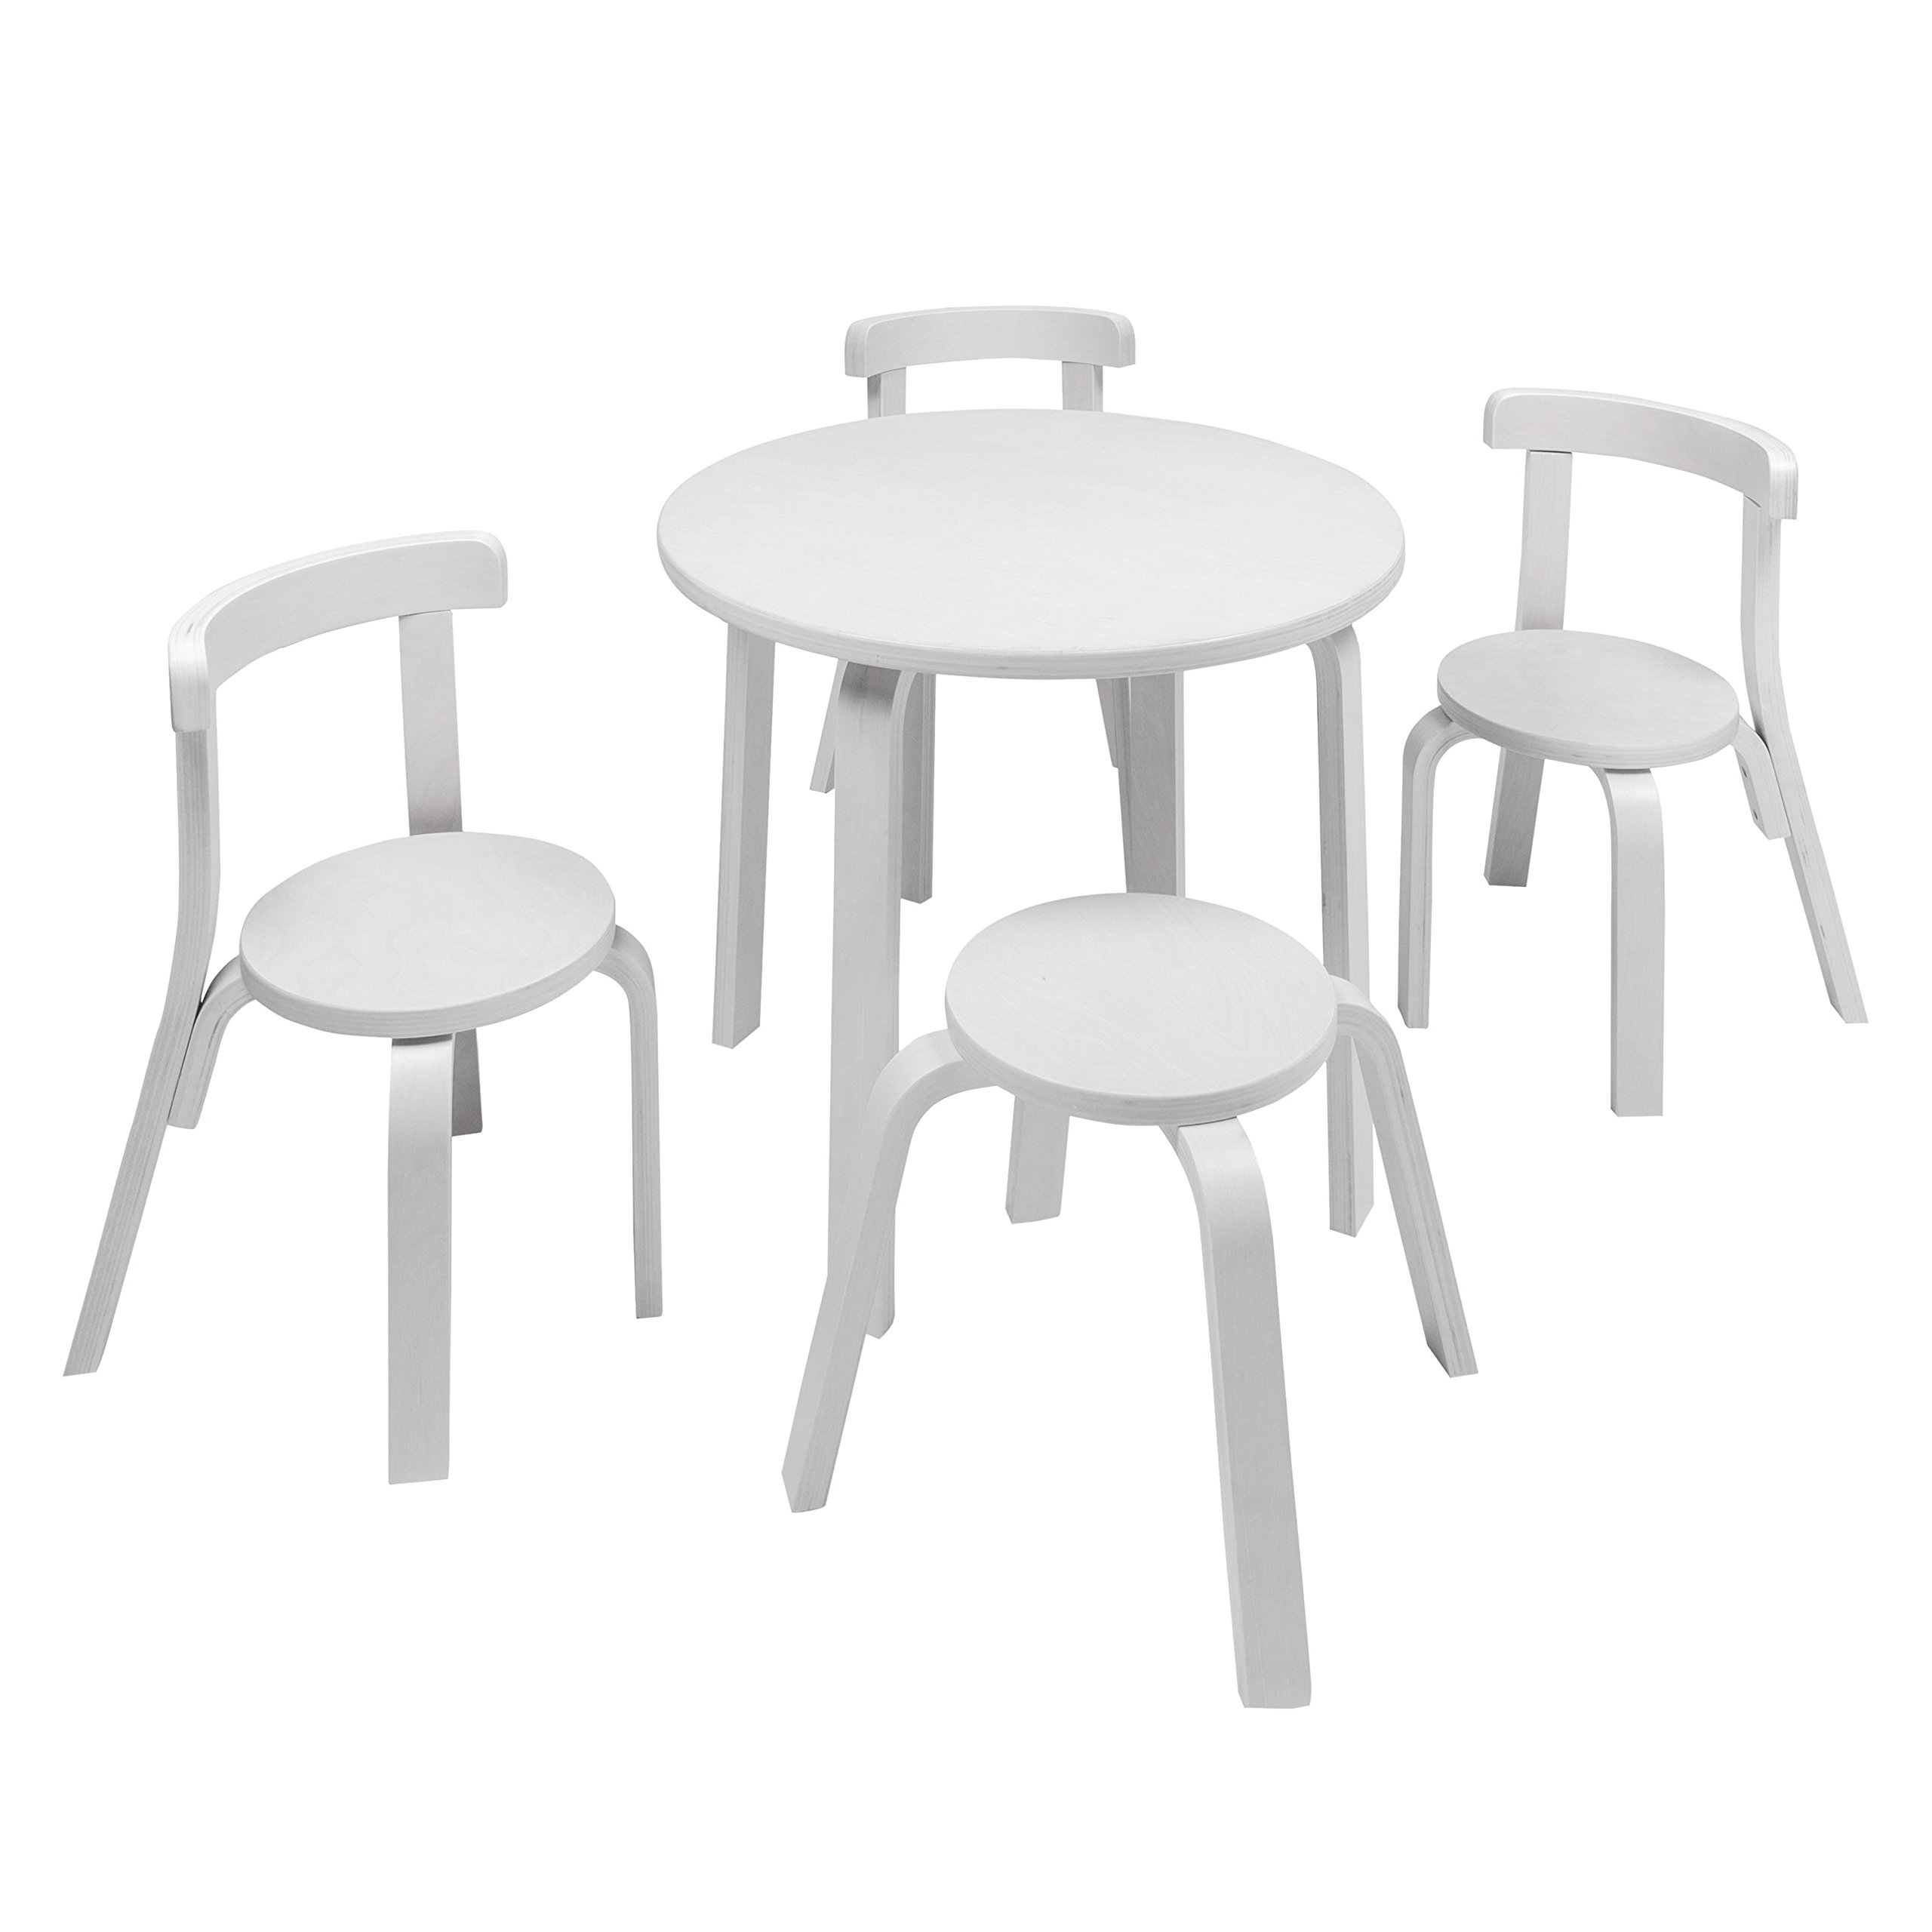 Kids Table and Chair Set - Svan Play with Me Toddler Table Set with 3 Chairs and Stool - 100% Wood (White) by Svan (Image #1)